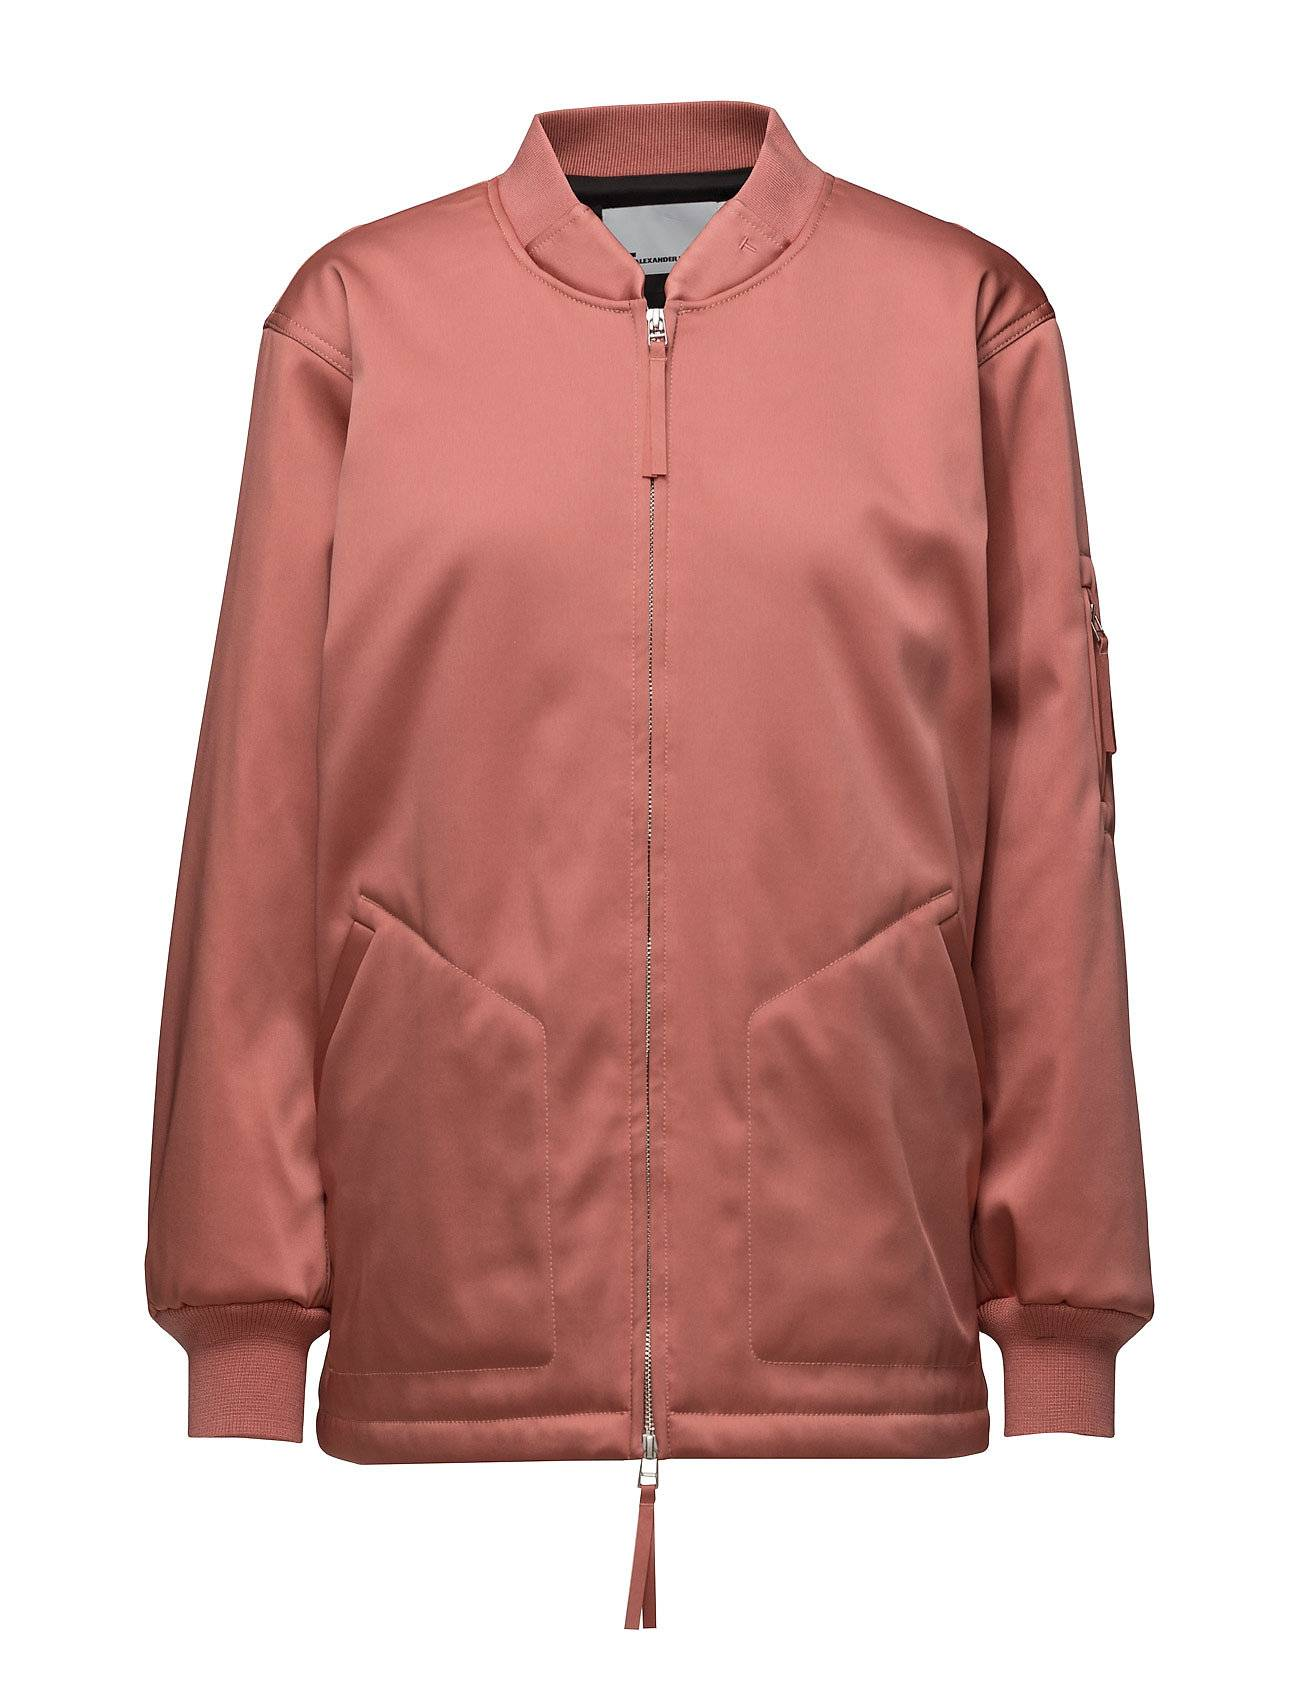 T by Alexander Wang Oversized Bomber